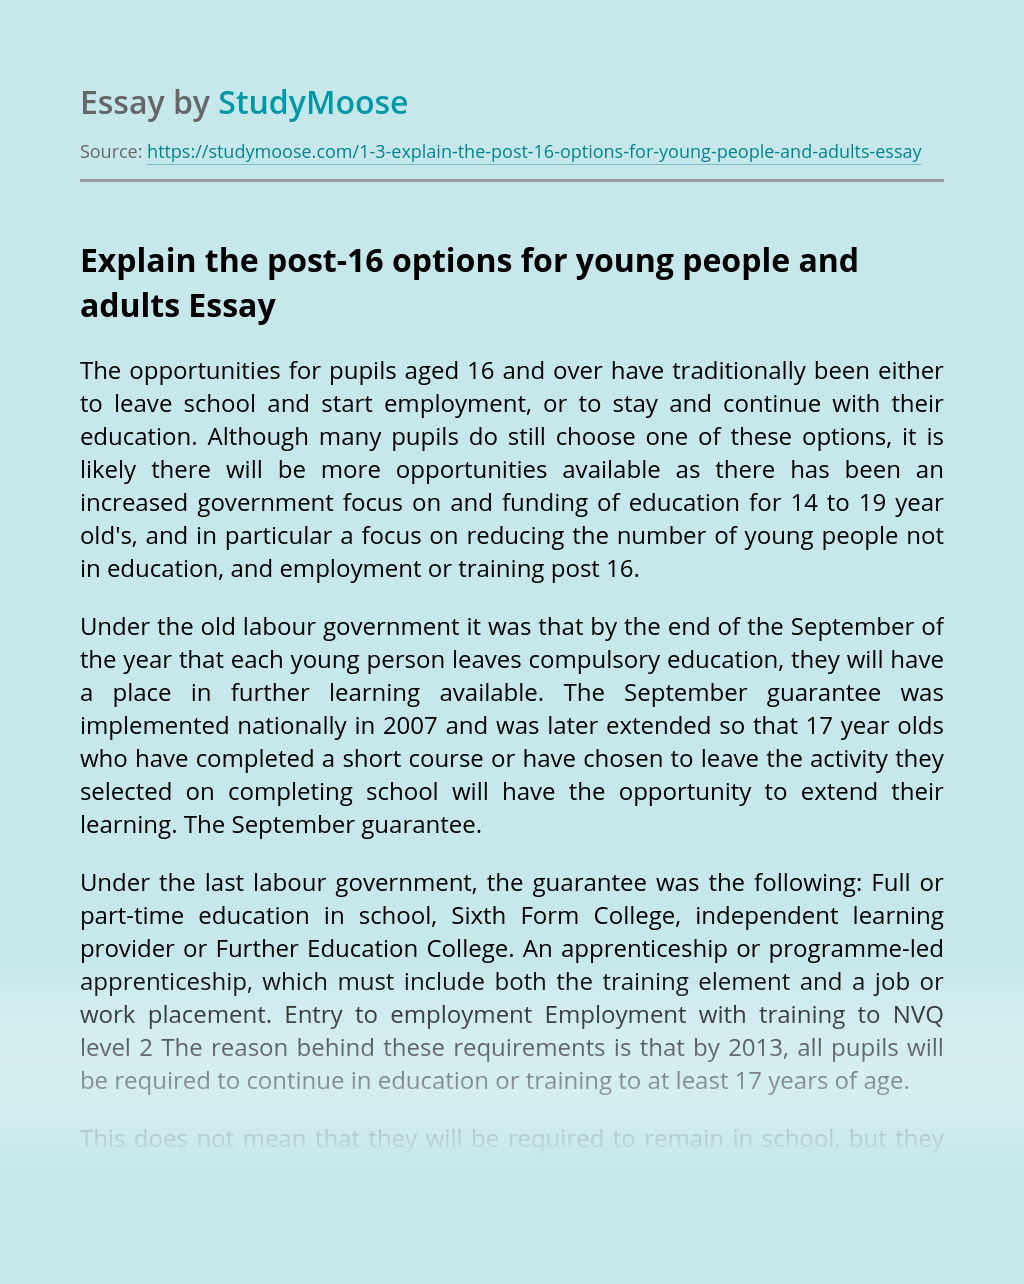 Explain the post-16 options for young people and adults